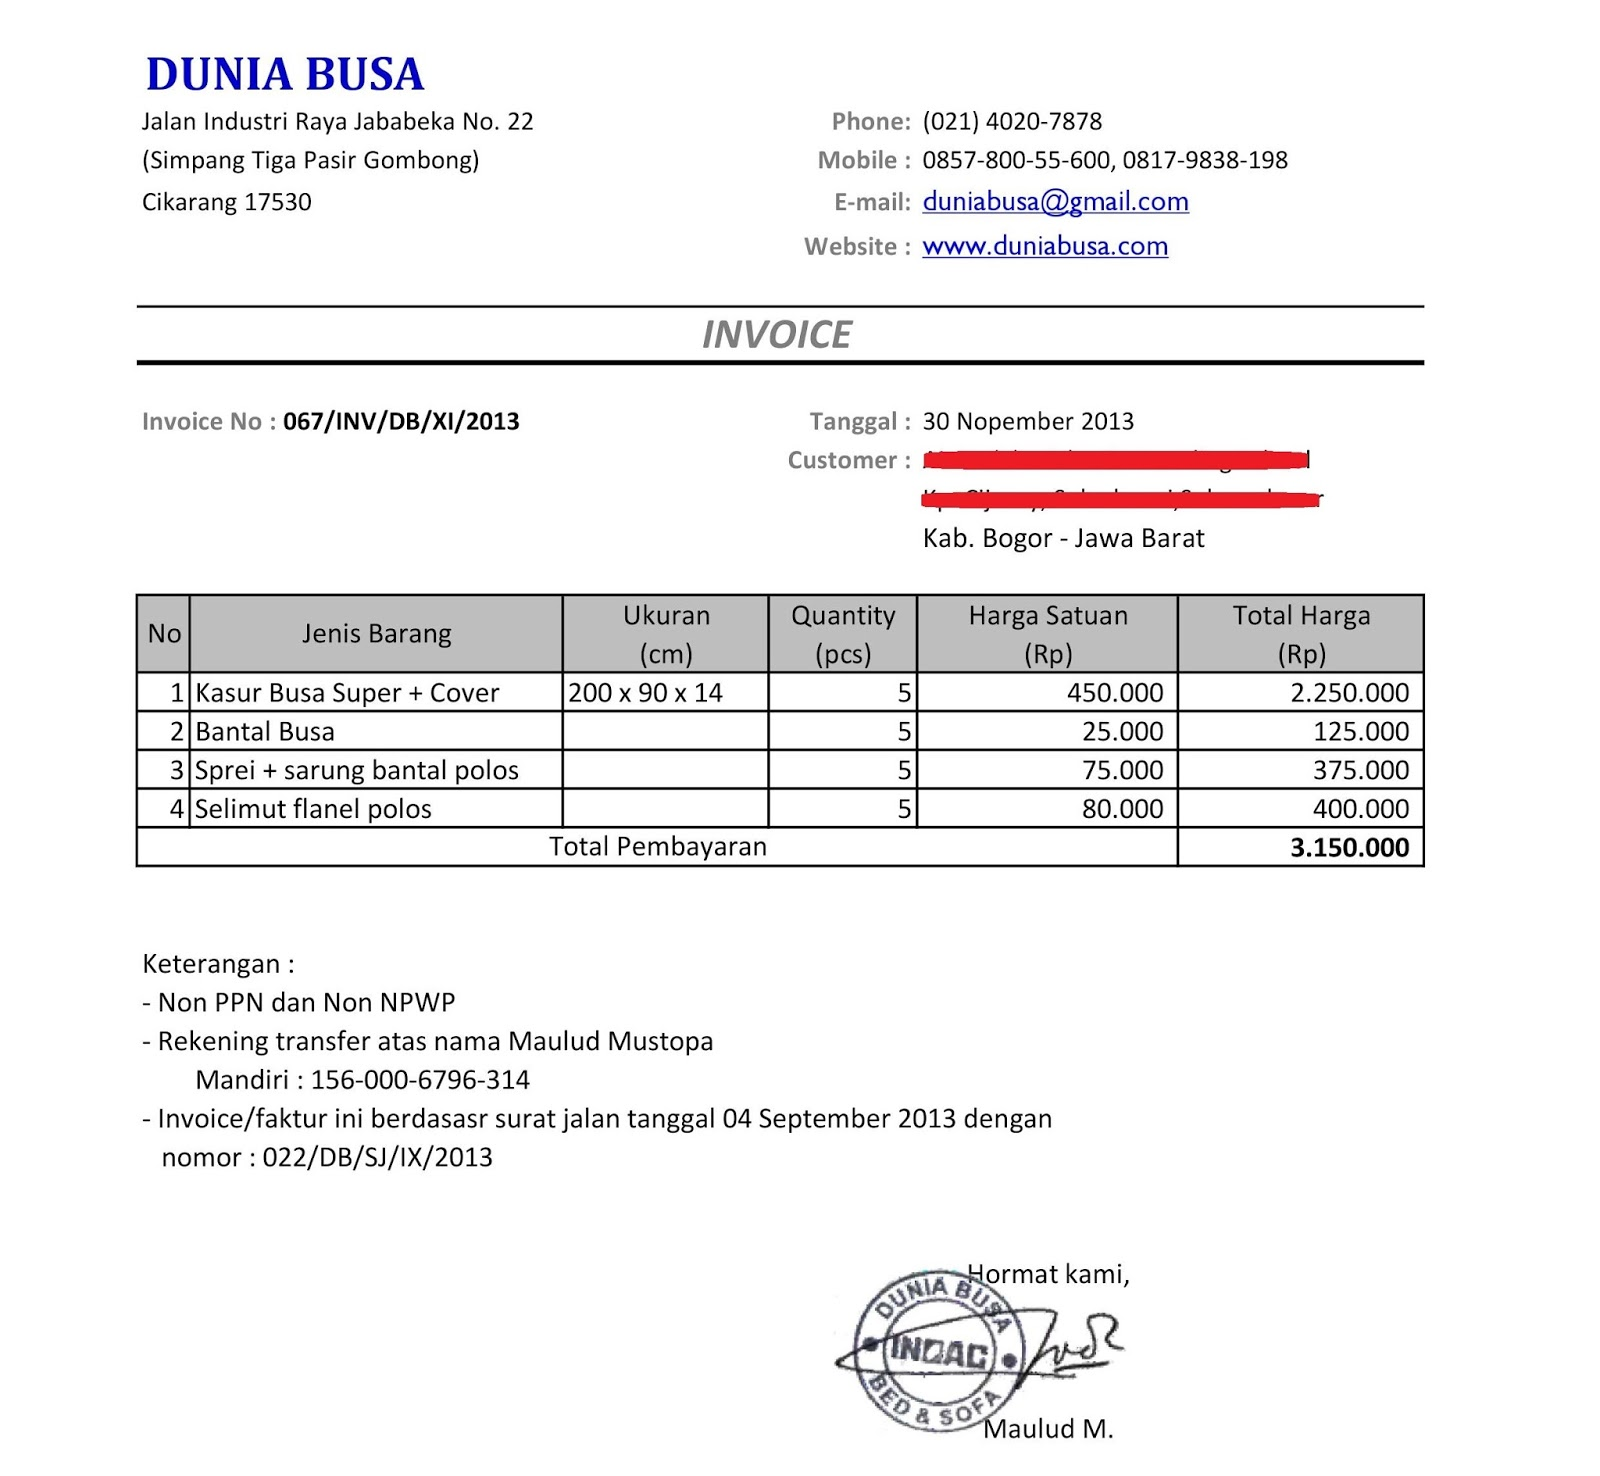 Aldiablosus  Pleasant Free Invoice Online  Create Invoice Online  Invoice Template  With Marvelous Contoh Format Invoice Atau Surat Tagihan  Brankas Arsip  Free Invoice Online With Comely Painter Invoice Template Also Commercial Invoice Form Pdf In Addition Create Invoice Online Free And Sample Consulting Invoice Word As Well As Edmunds New Car Dealer Invoice Additionally Auto Body Repair Invoice From Sklepco With Aldiablosus  Marvelous Free Invoice Online  Create Invoice Online  Invoice Template  With Comely Contoh Format Invoice Atau Surat Tagihan  Brankas Arsip  Free Invoice Online And Pleasant Painter Invoice Template Also Commercial Invoice Form Pdf In Addition Create Invoice Online Free From Sklepco